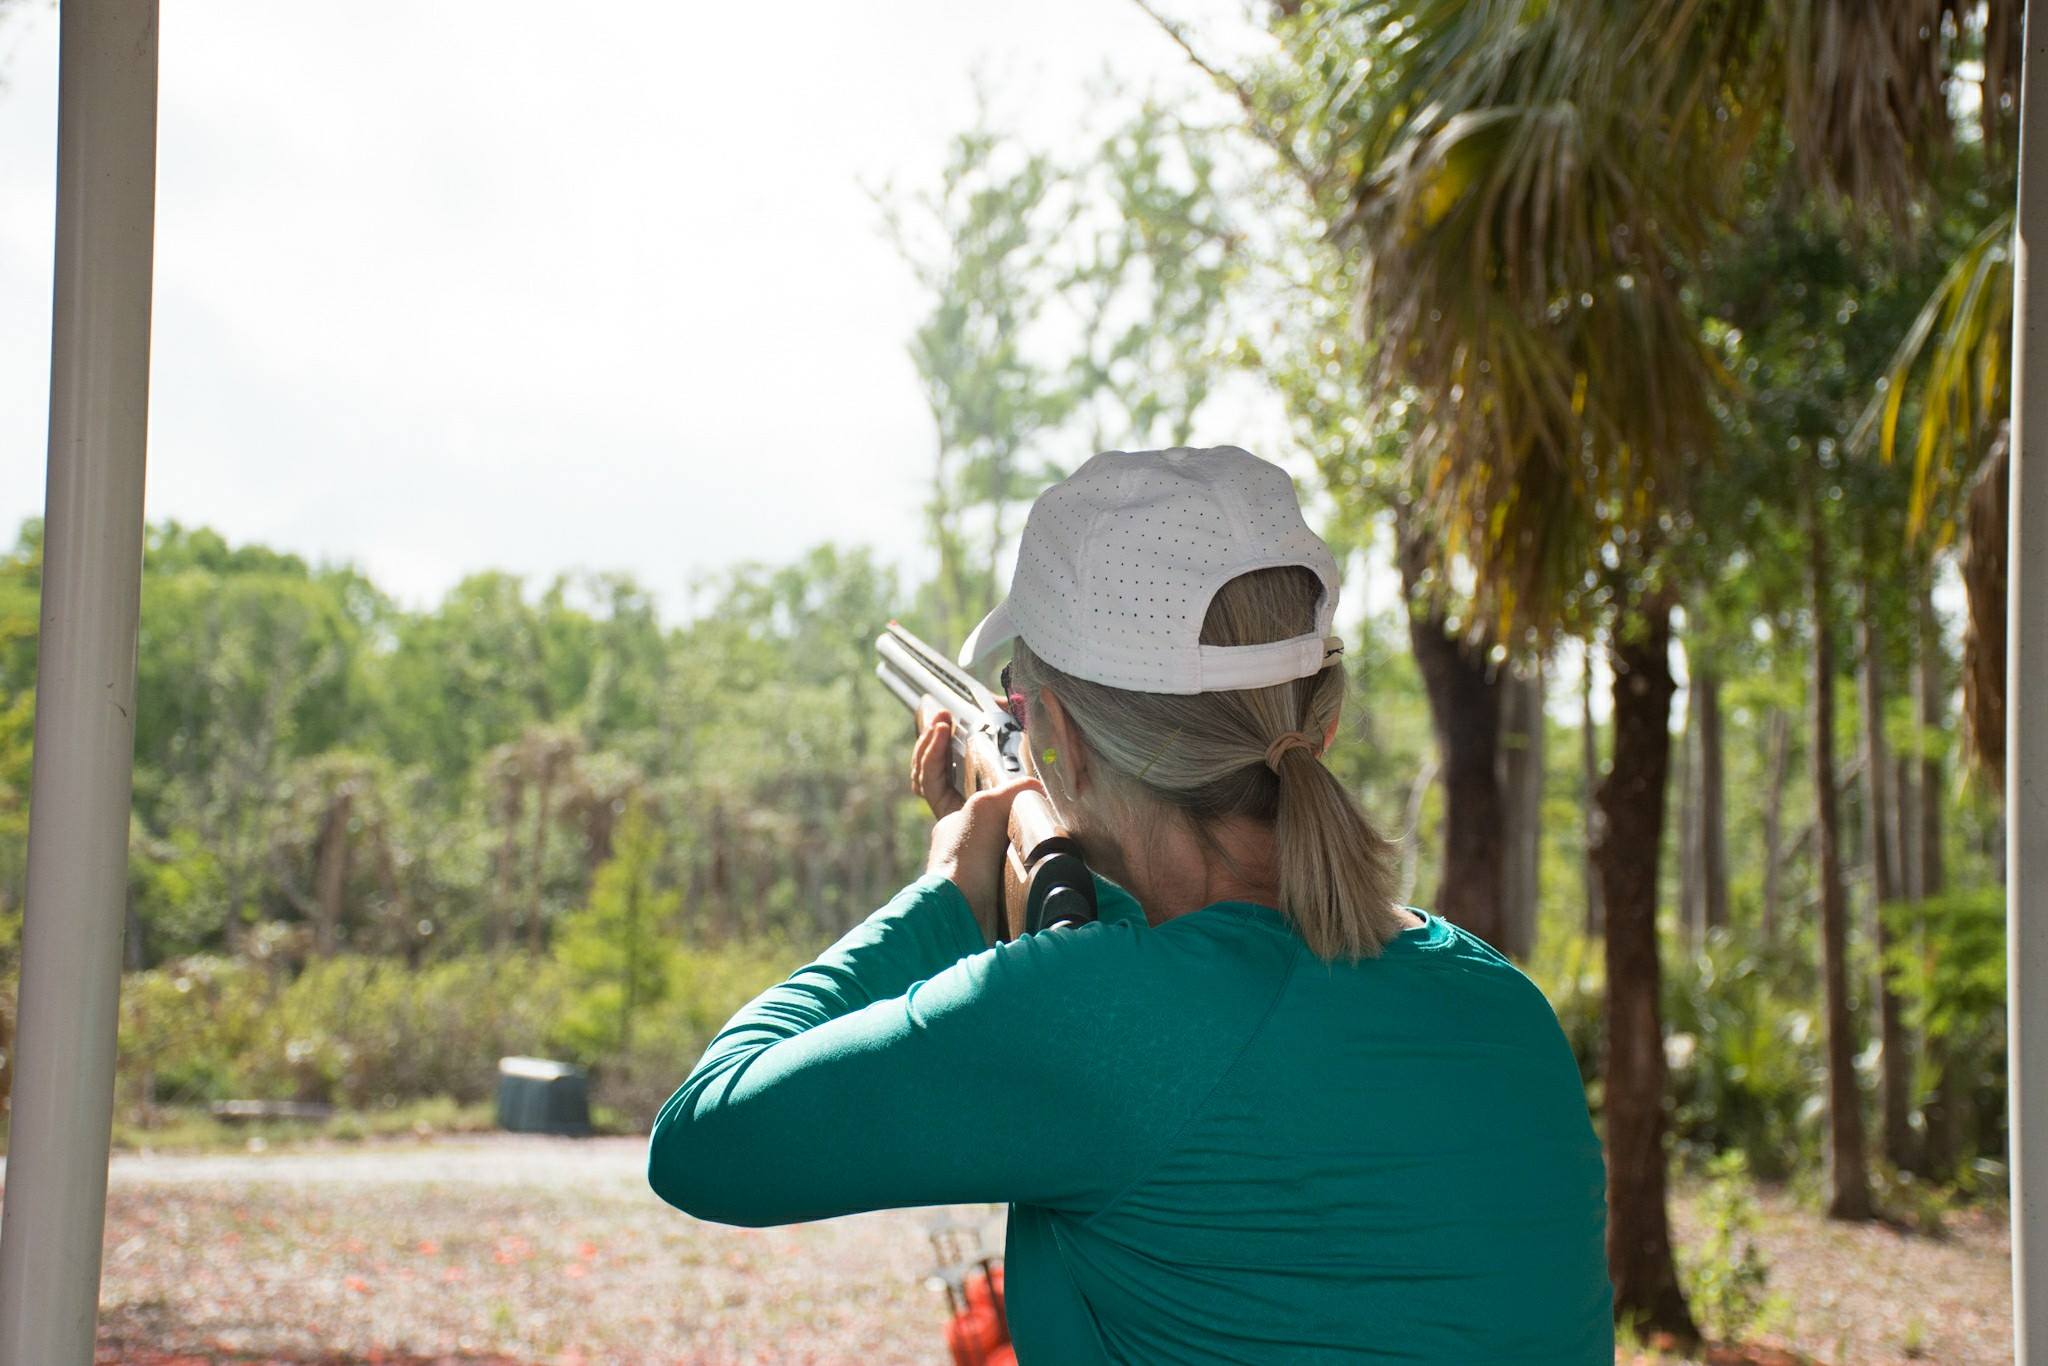 A lady shooting sporting clays